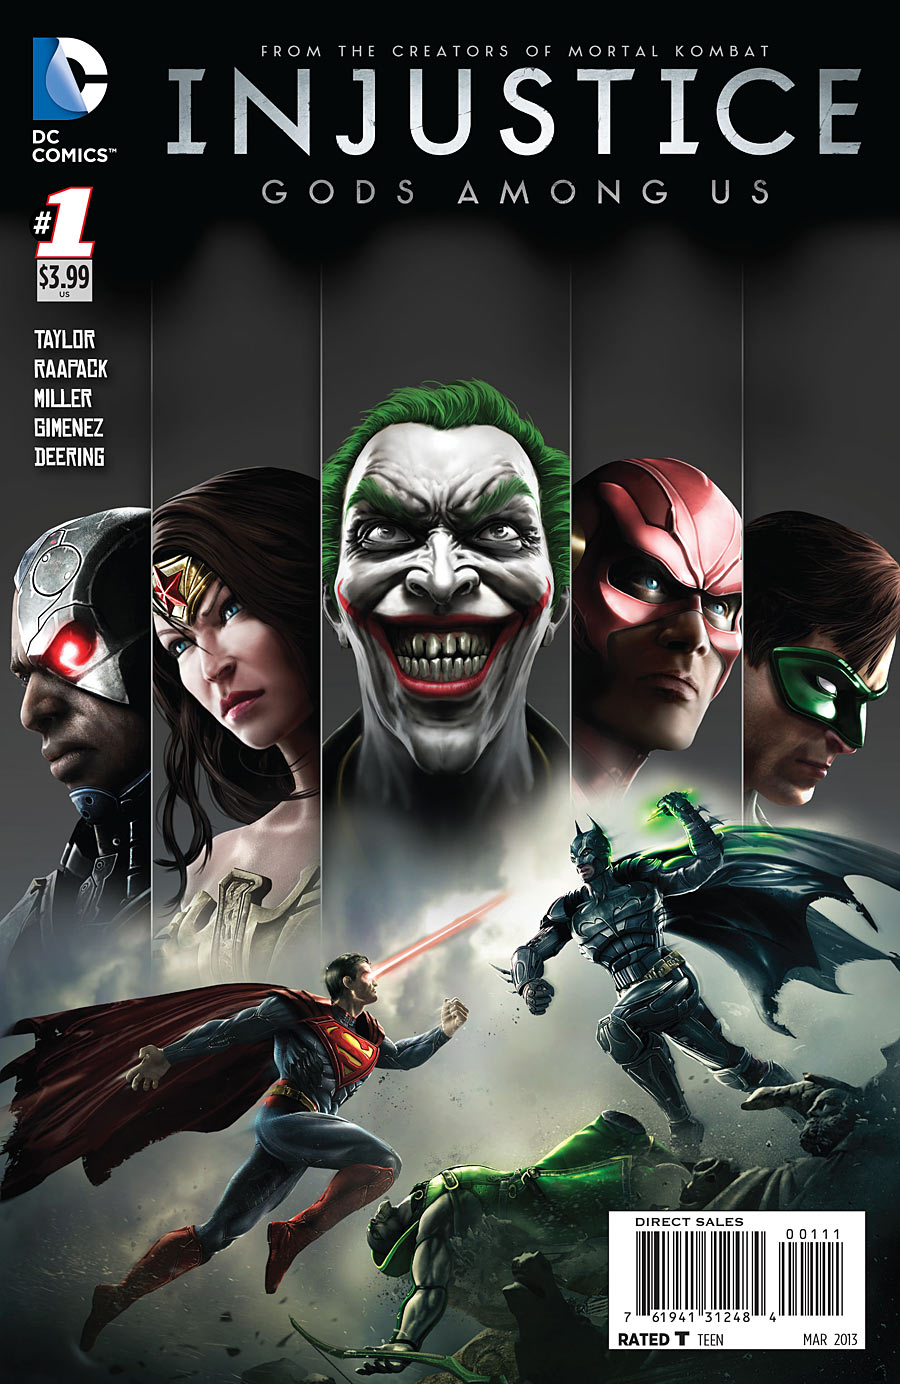 Injustice comic